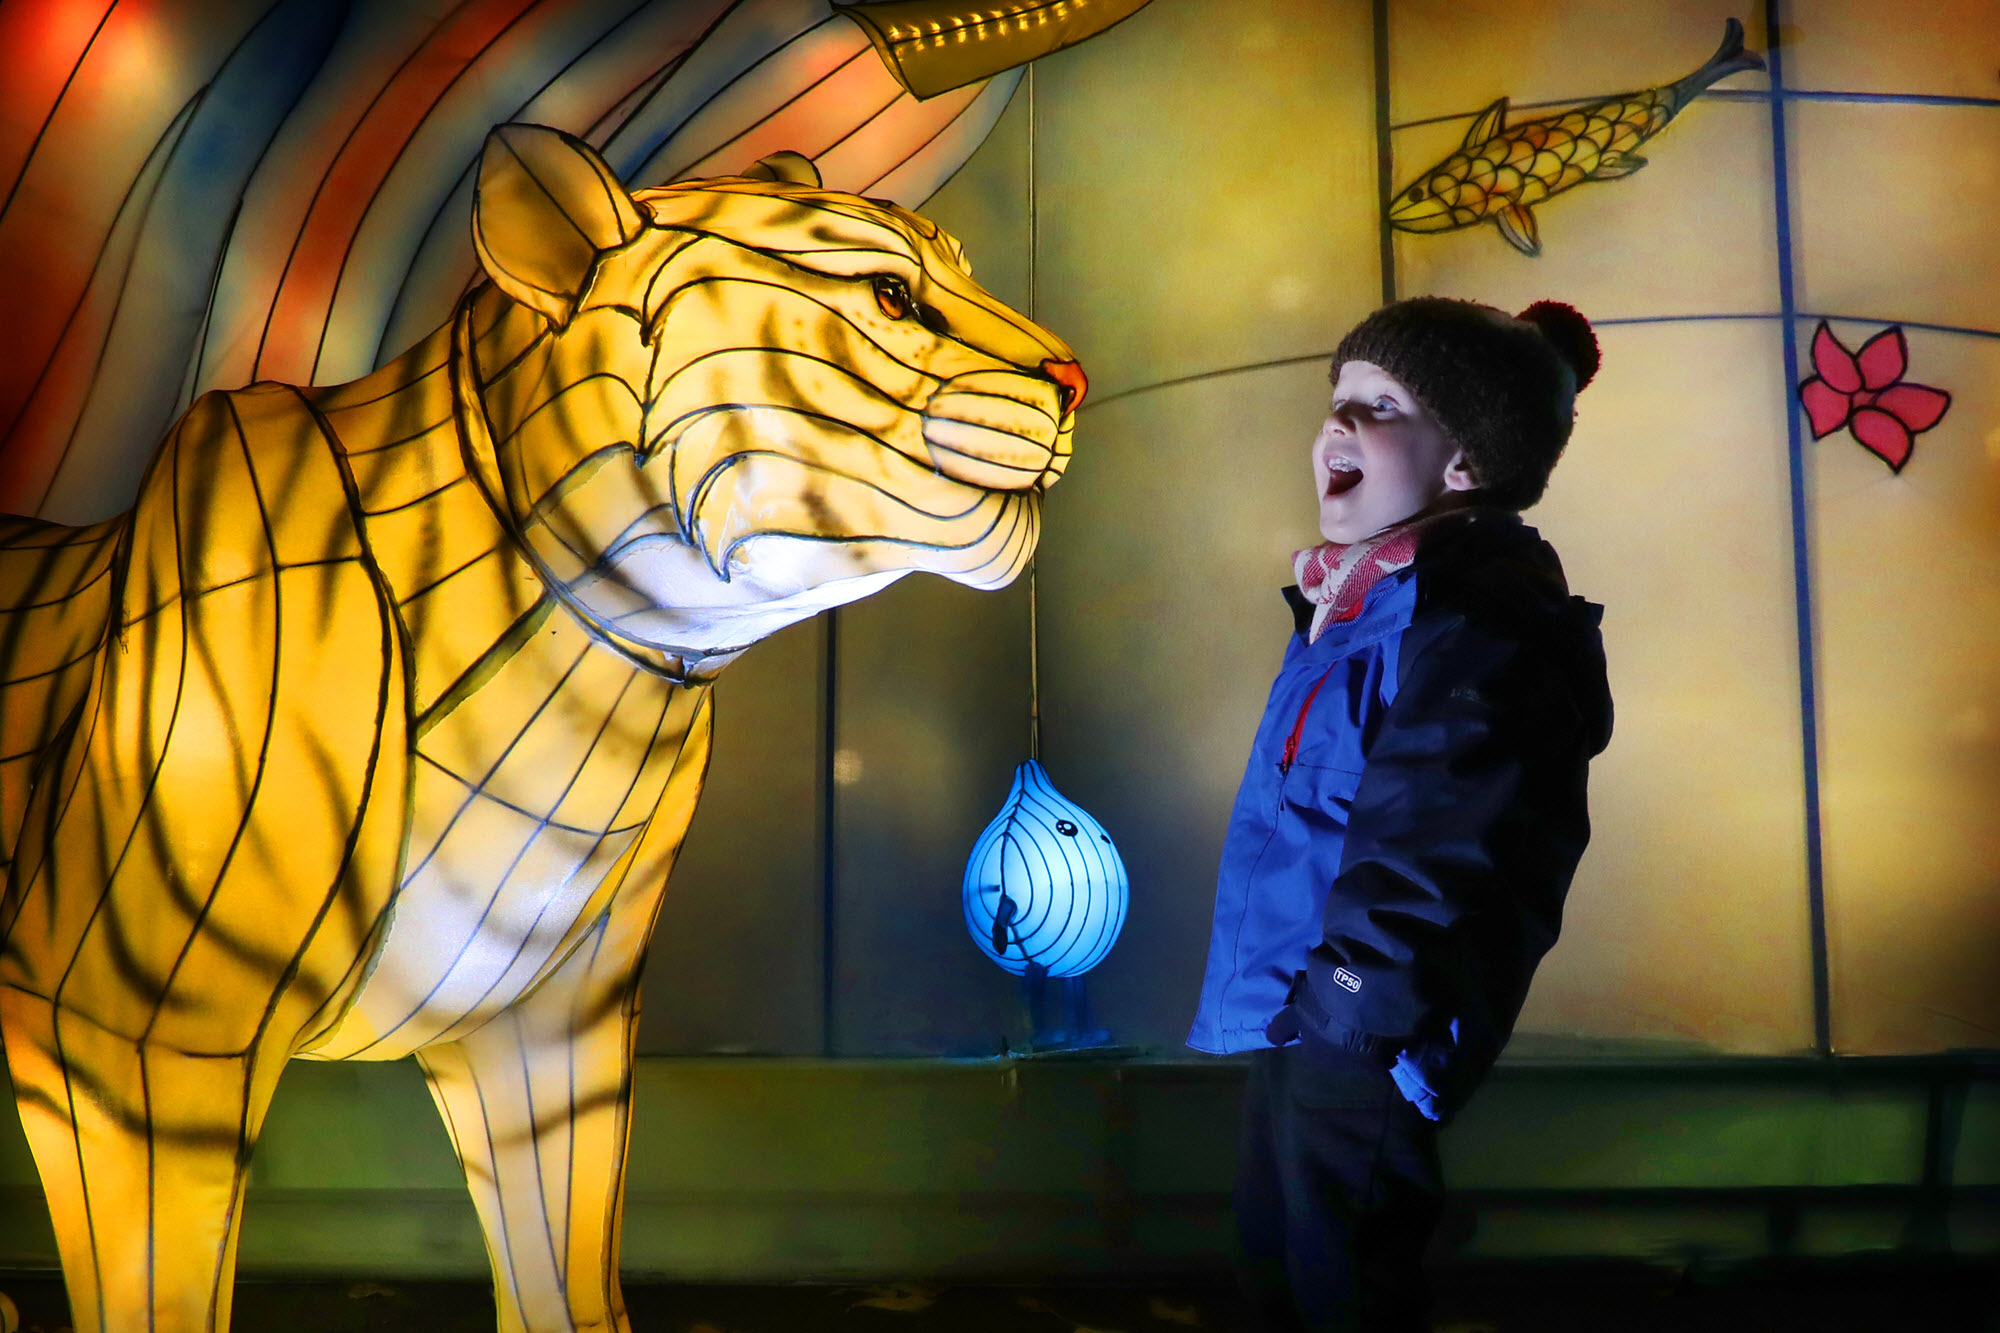 Young visitor Magnus McMahon at The Giant Lanterns of China, a trail at the zoo featuring hundreds of gigantic lanterns inspired by mythical creatures (RZSS Edinburgh Zoo/PA Wire)